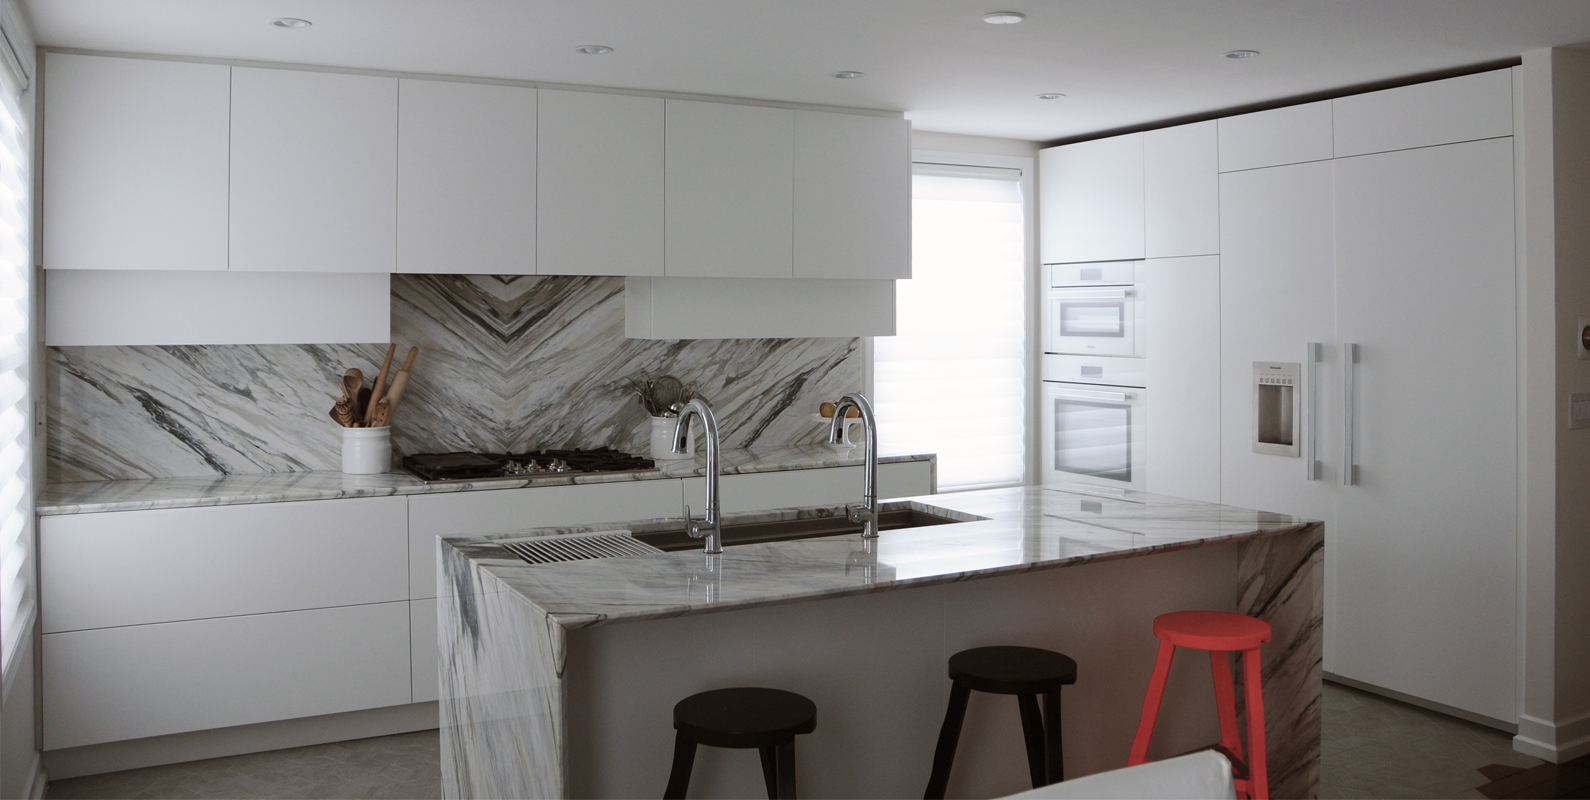 corian-williamsburg-renovation-marble-italian design